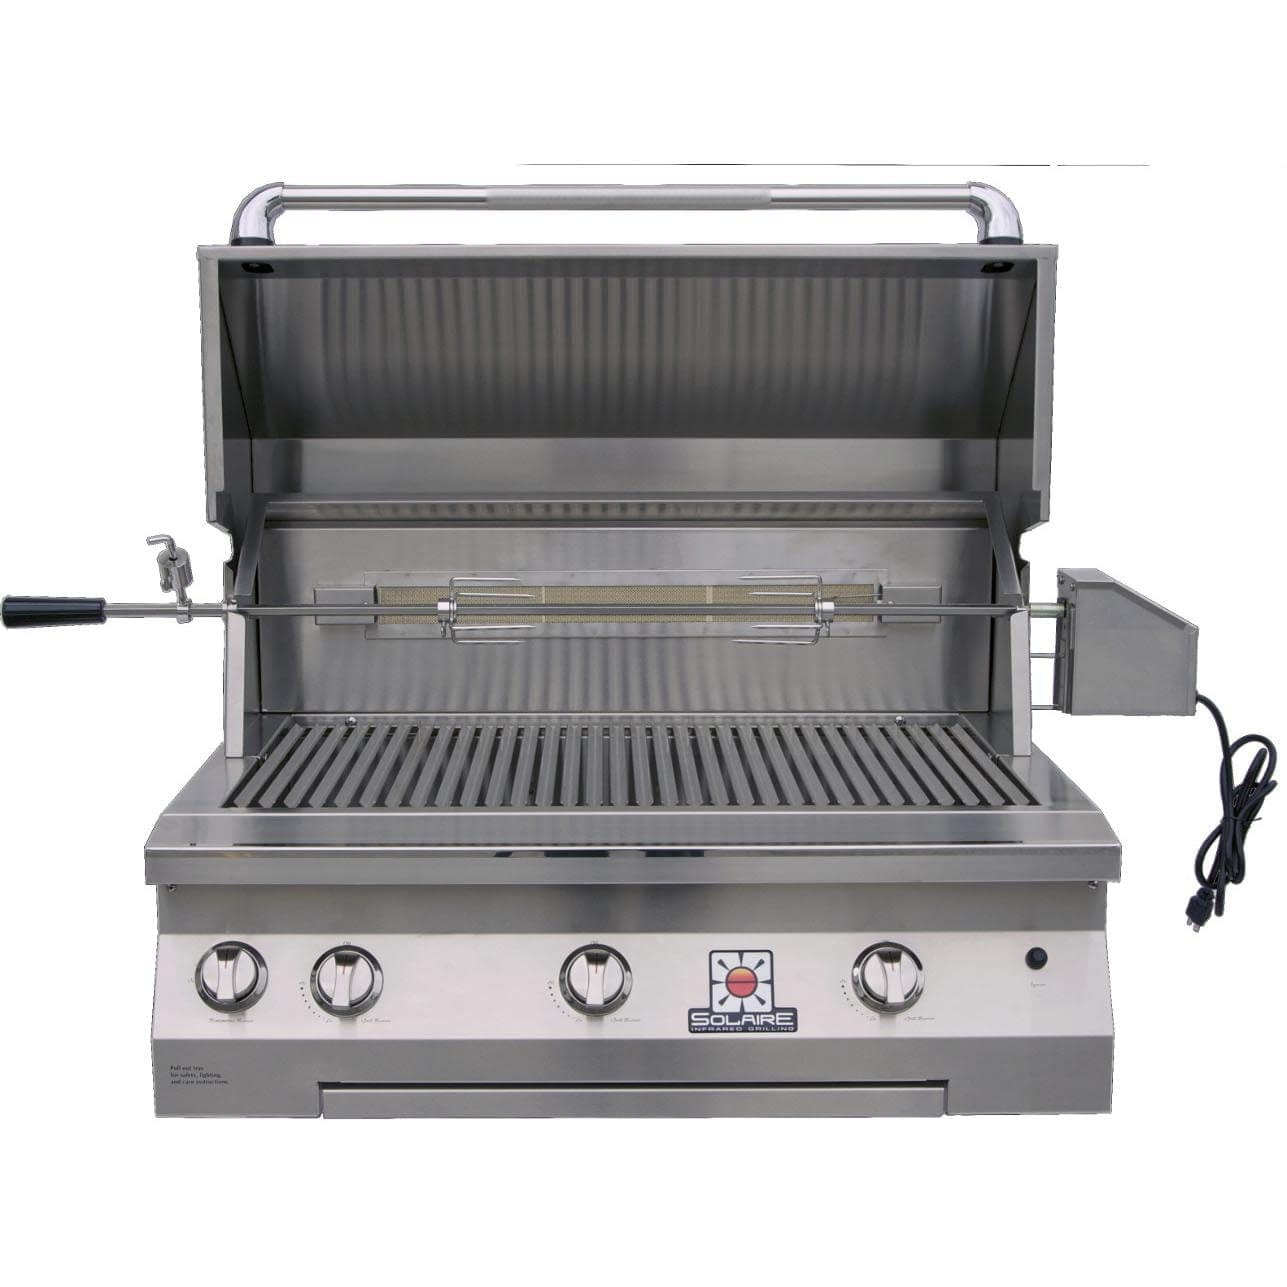 Solaire Grill Repair Near me